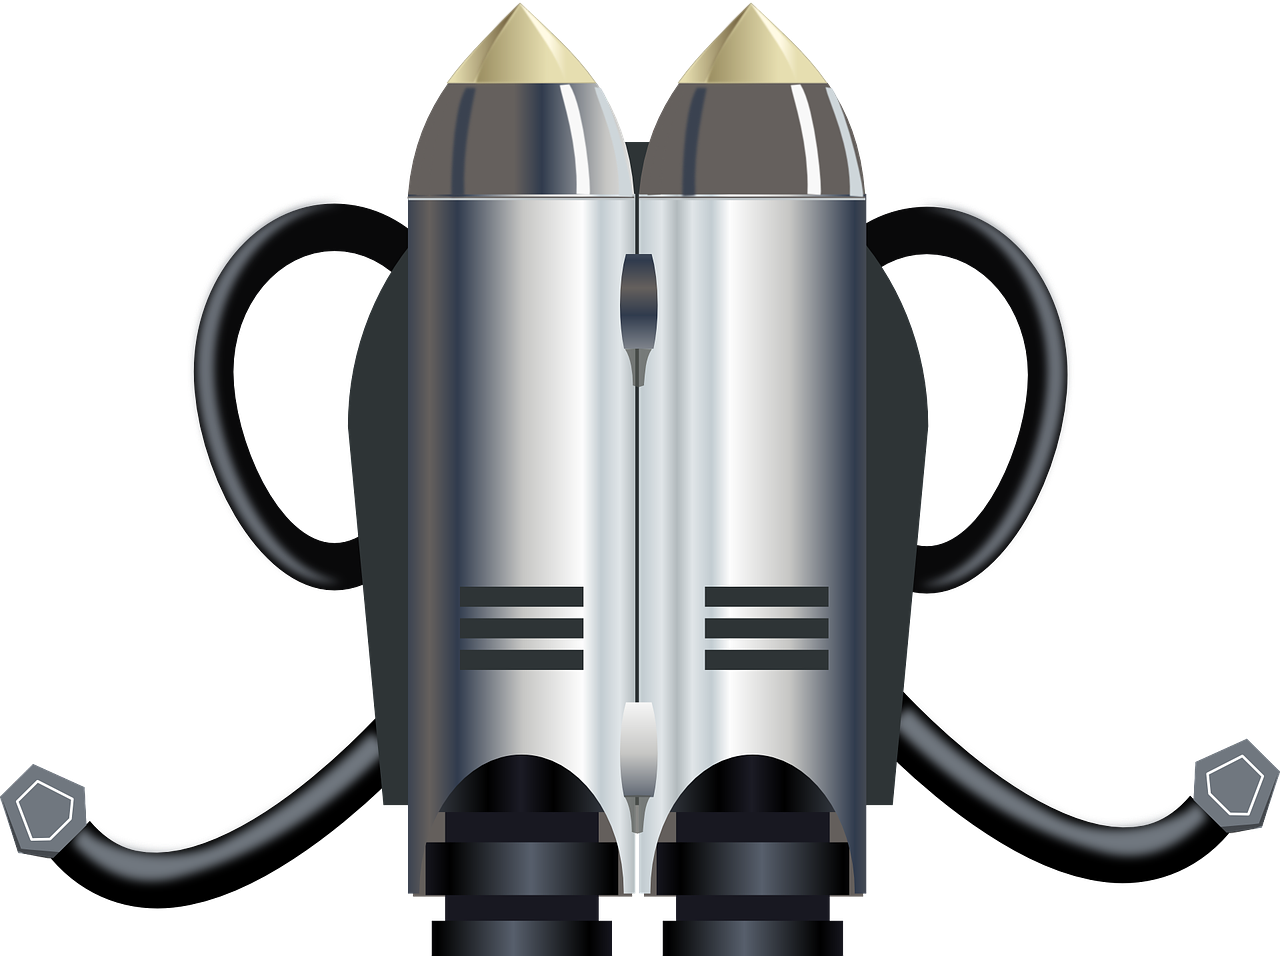 Image of jetpack which symbolizes that the salvation of Jesus Christ allows you to fly free. This joy should be transmitted in your life.